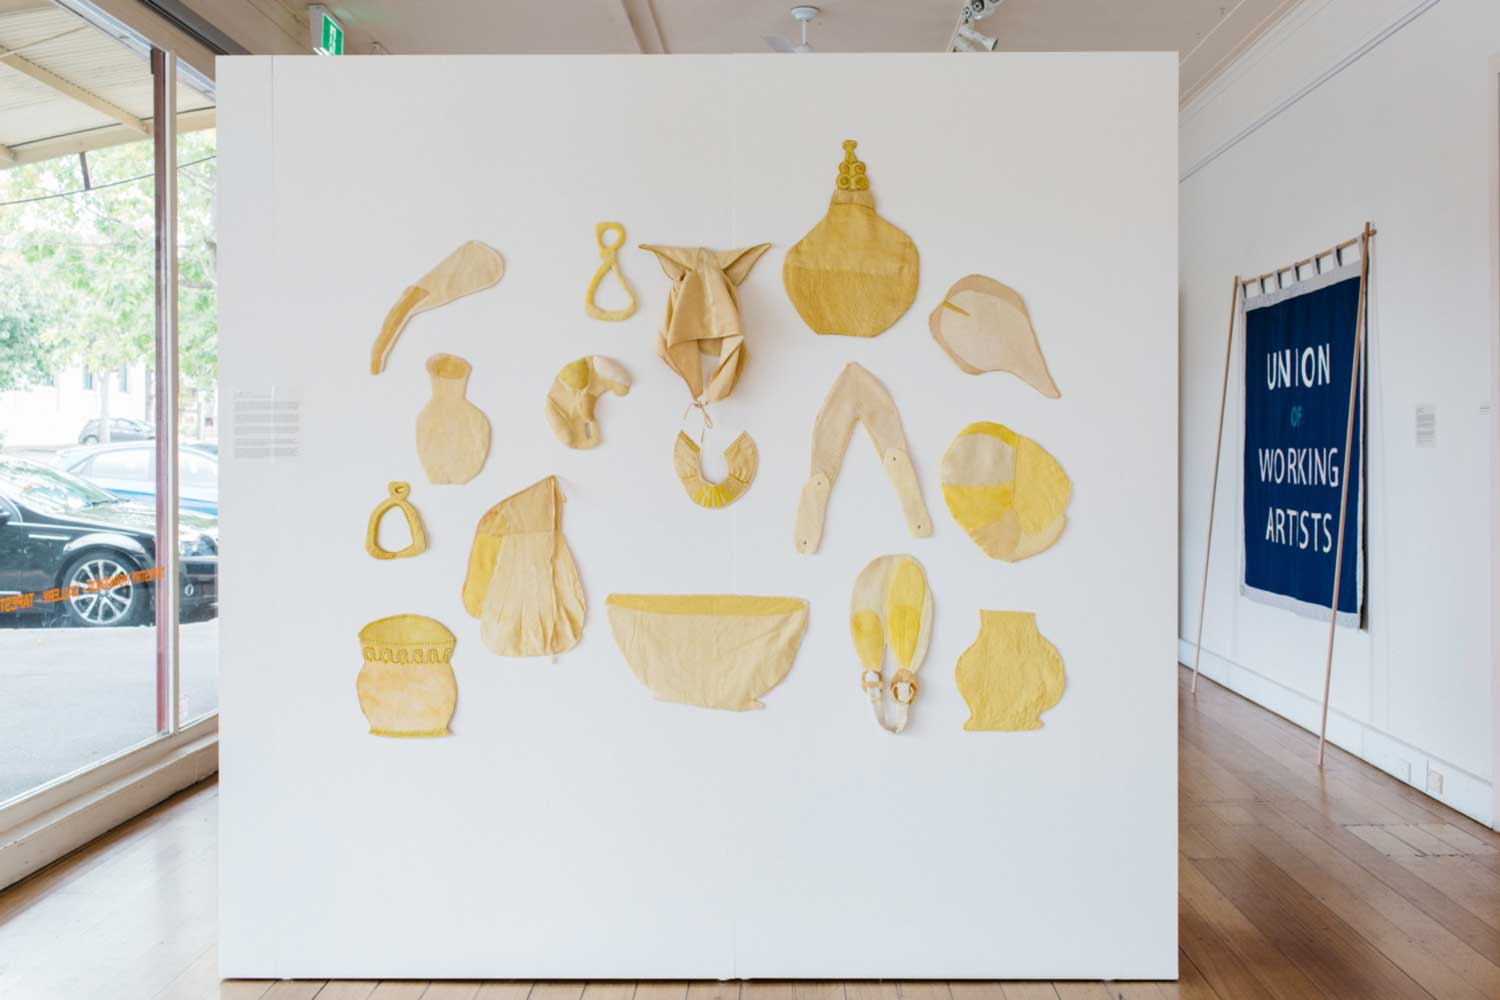 'AIR19' in situ at ATW. Left to Right: Artworks by Kate James and Nina Ross and Stephen Palmer